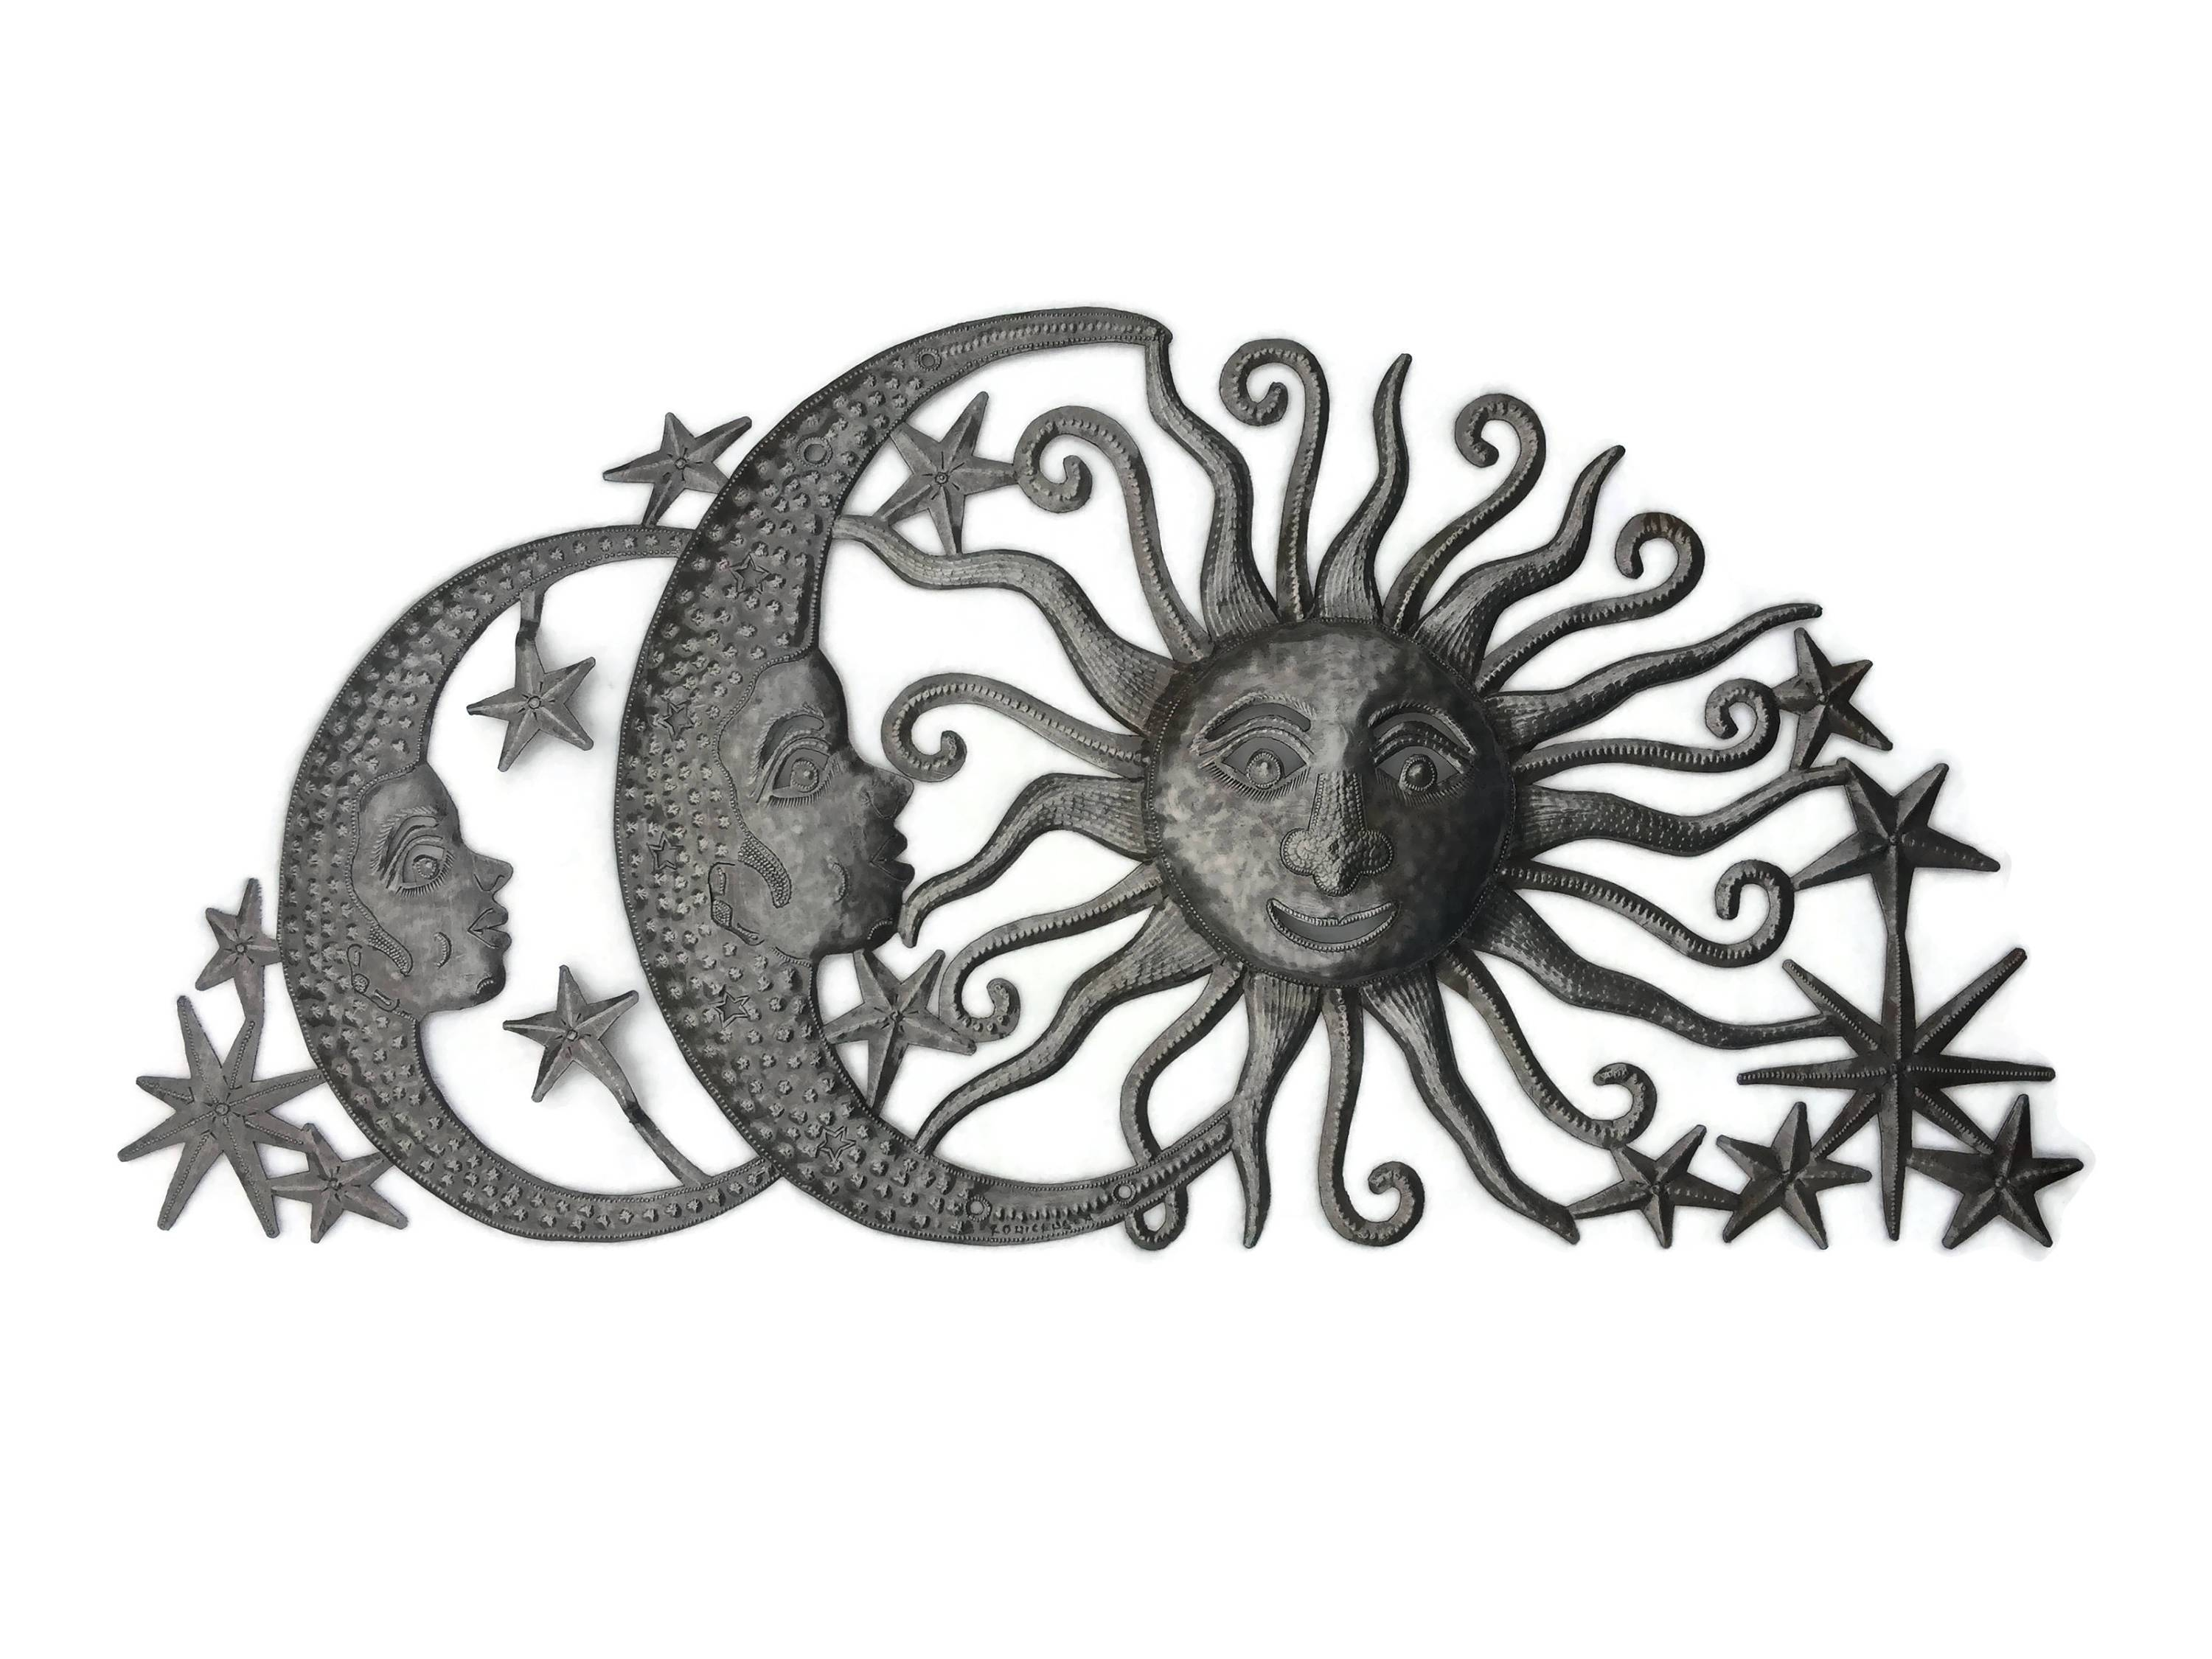 Sun Moons And Stars Celestial Arch, Haiti Metal Art, Fair Trade With Most Recent Haitian Metal Wall Art (View 17 of 20)